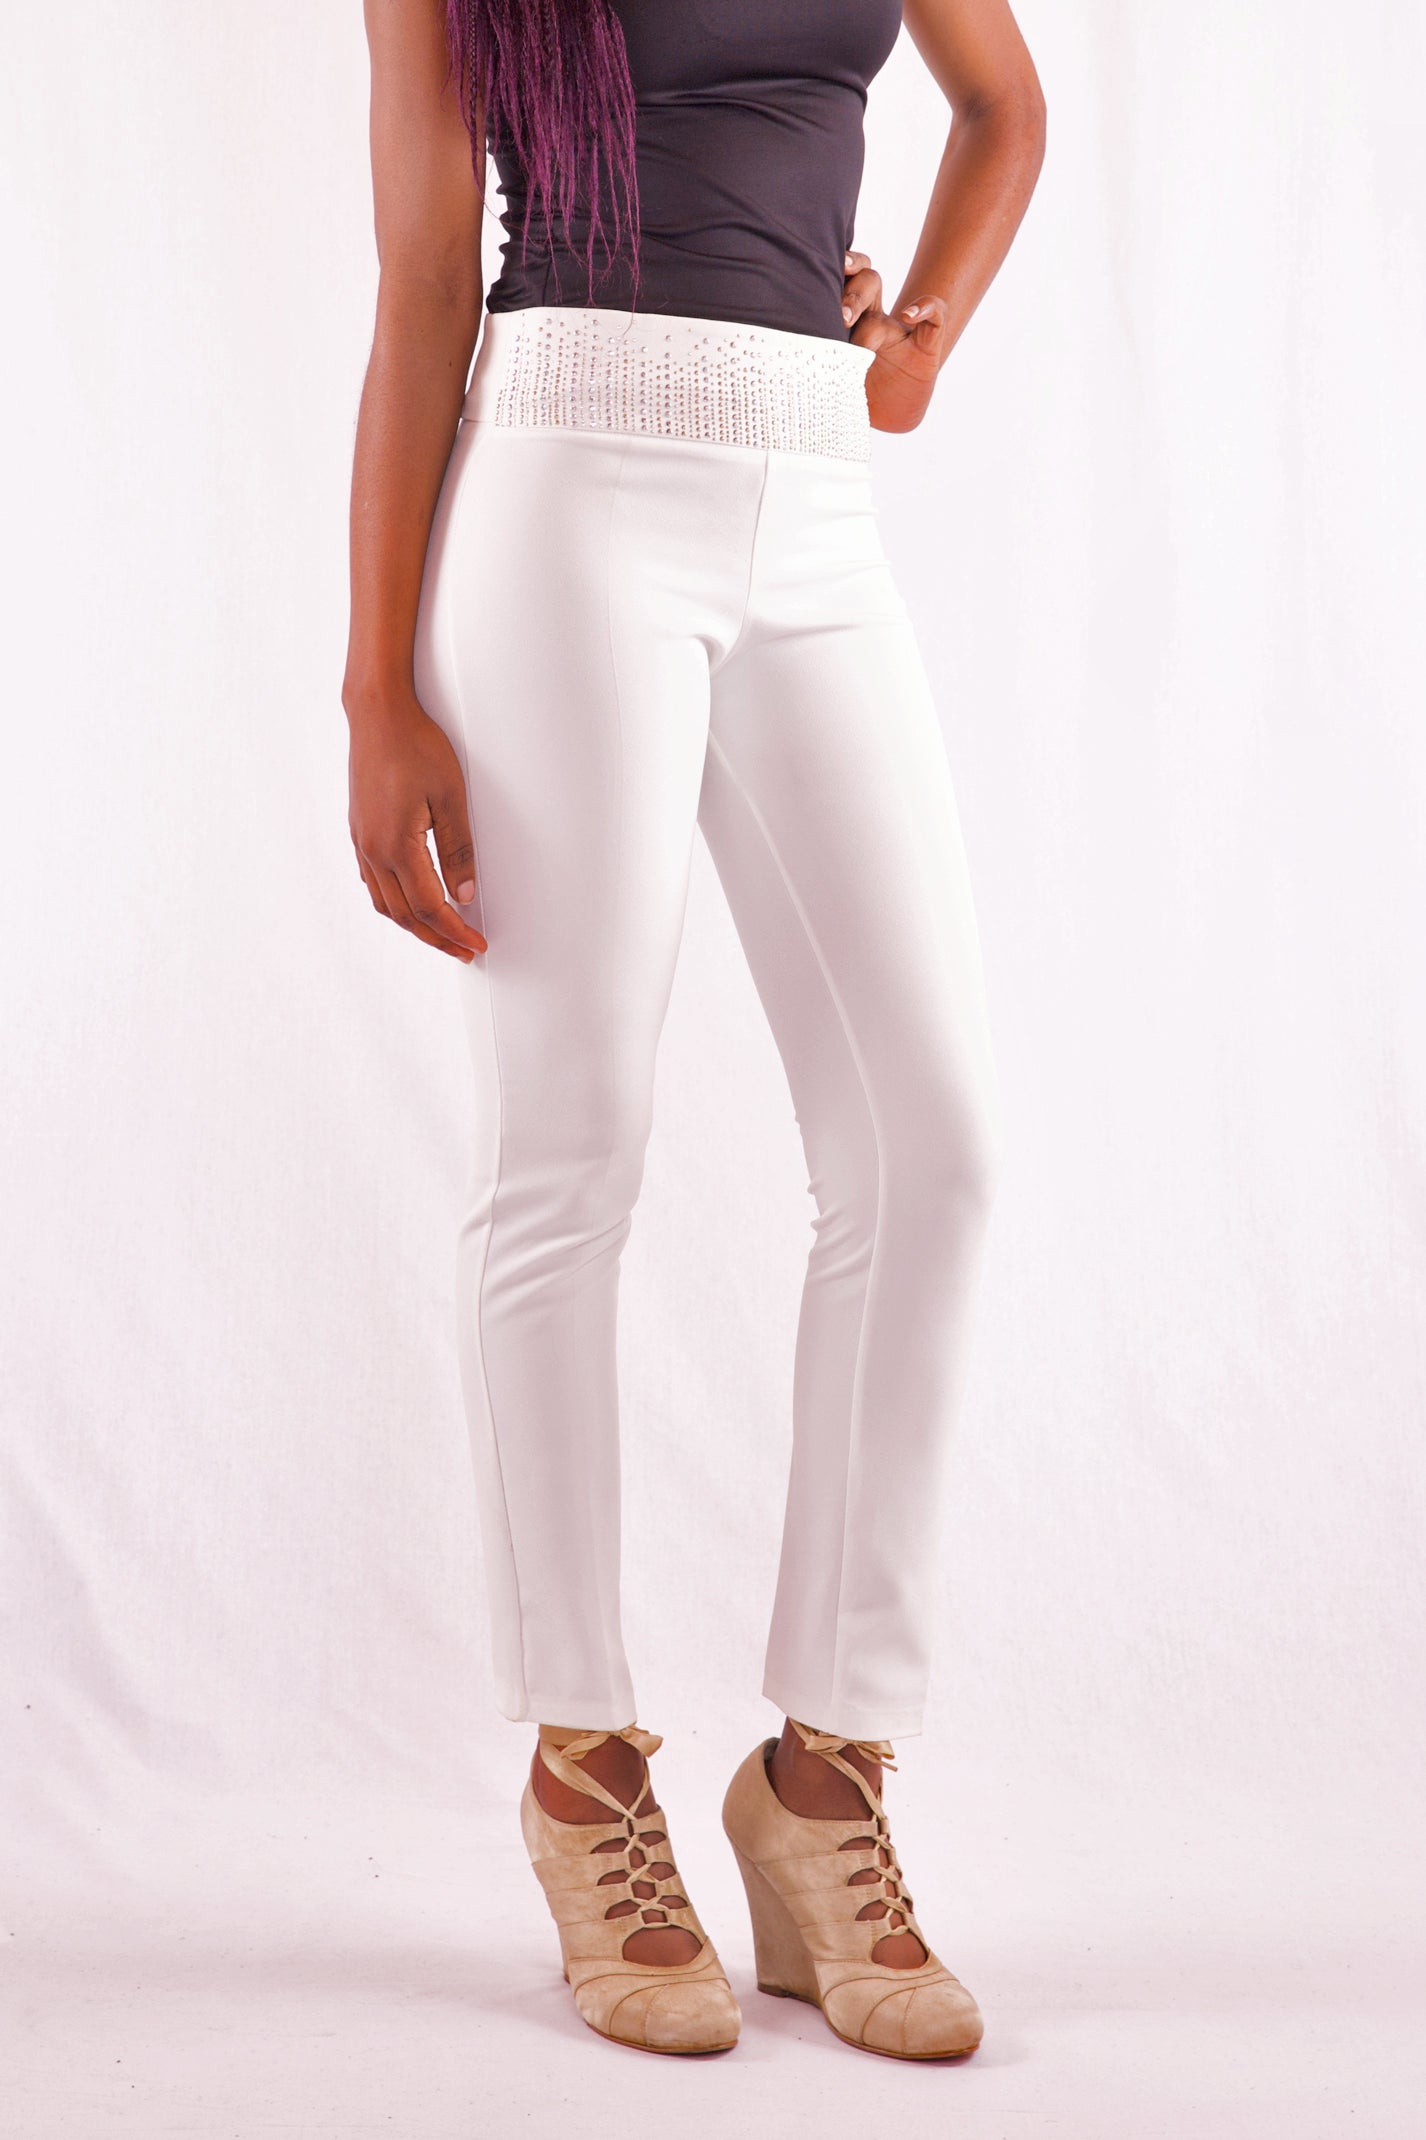 Women Slim Fit High Waist White Pant - Hillmarten